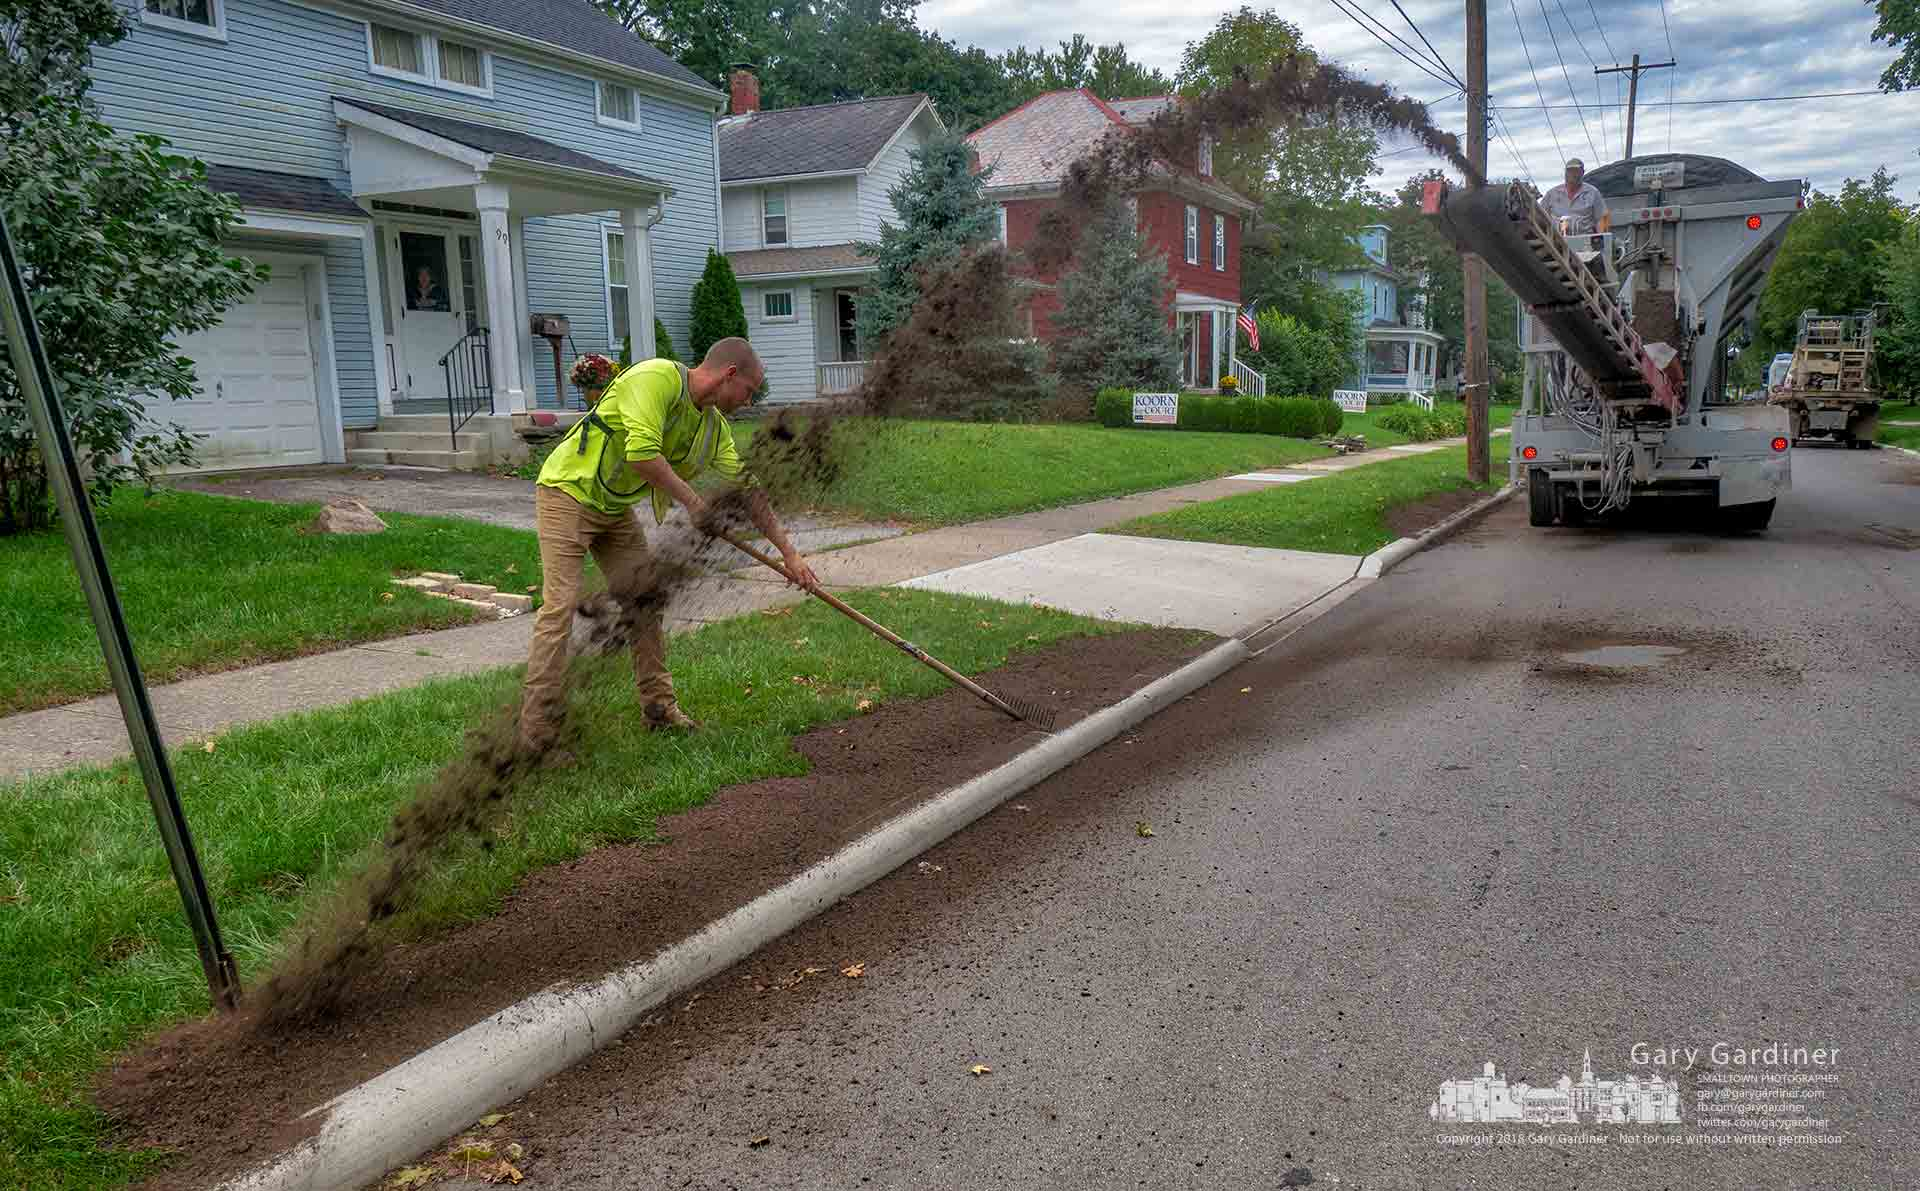 A roadside landscaping crew slings topsoil along the curbs on East Broadway to complete the process of rebuilding the street from State to Vine after laying new grass seed. My Final Photo for Sept. 27, 2018.